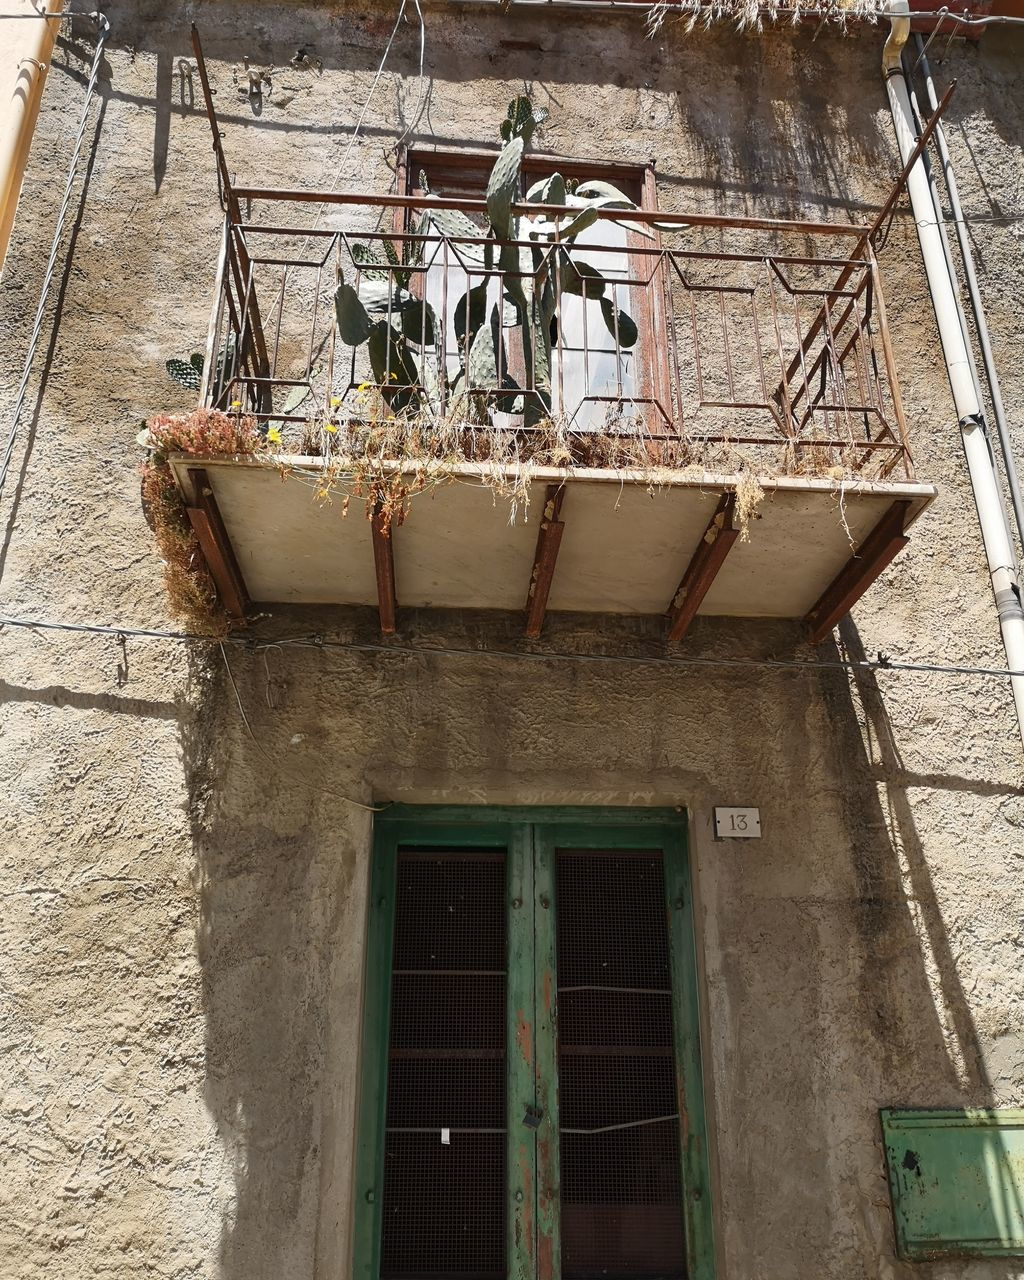 LOW ANGLE VIEW OF WINDOW HANGING ON OLD BUILDING